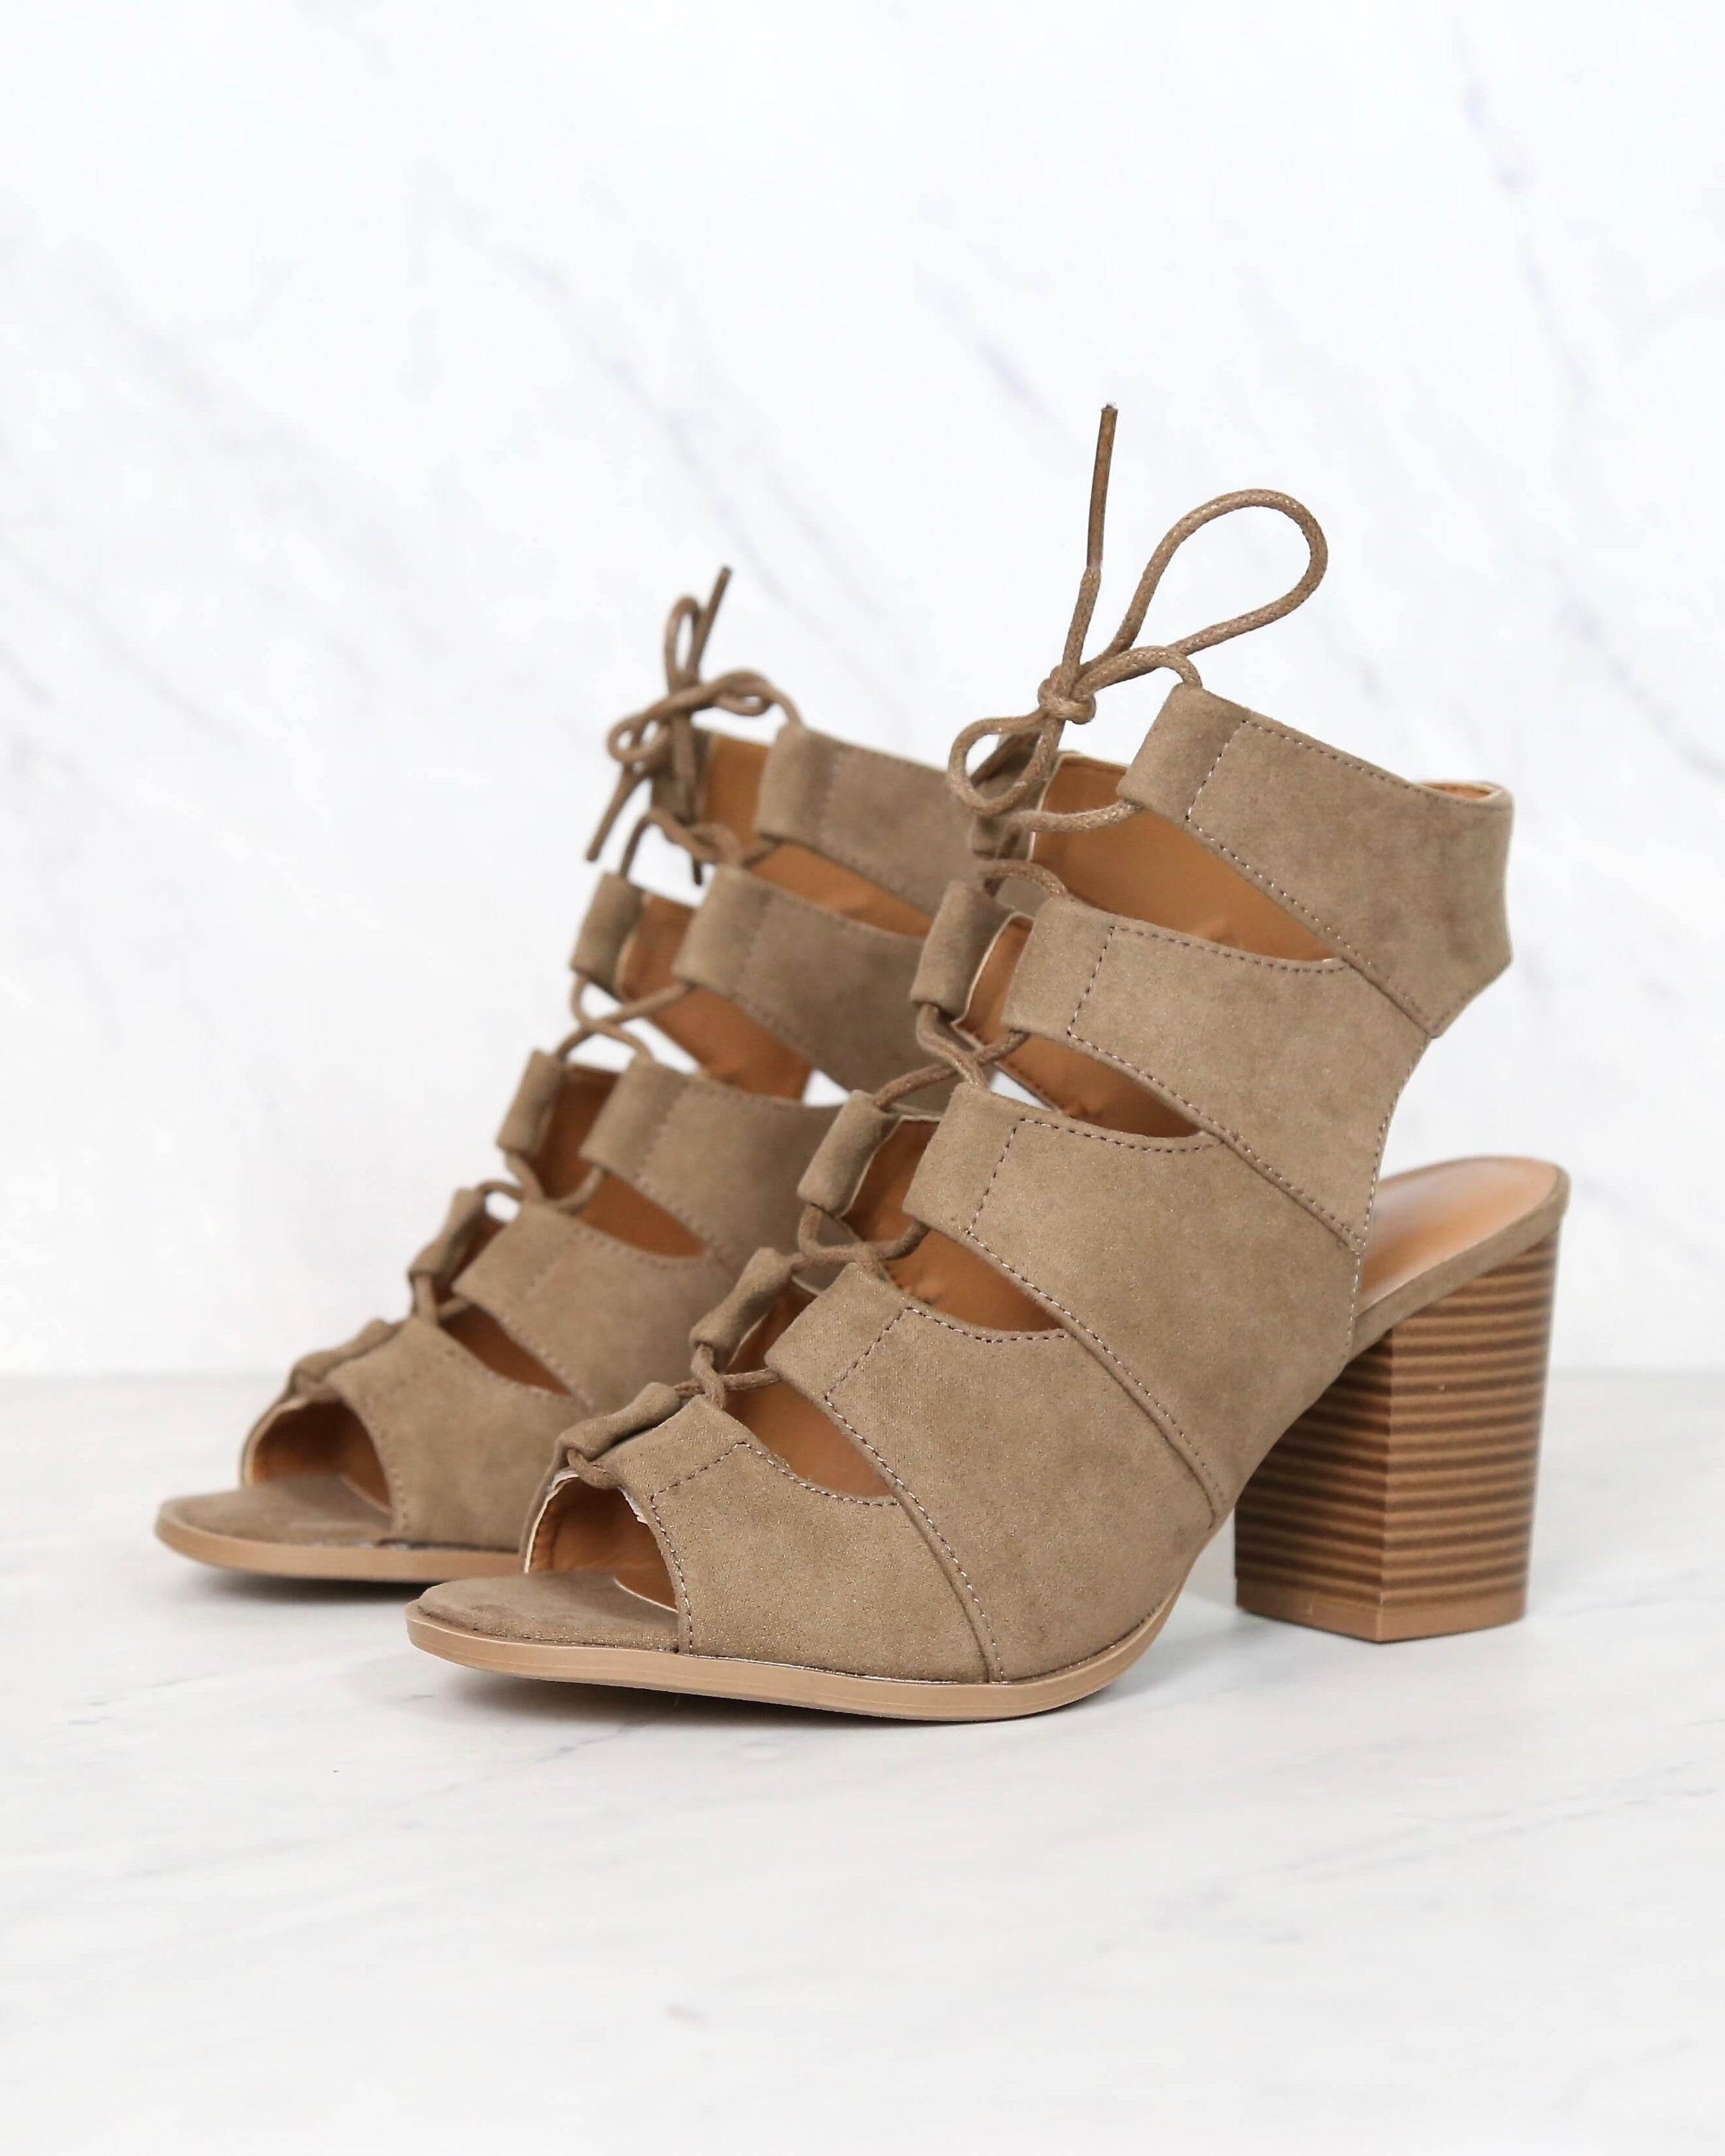 97b15921d524c peekaboo cut out heels - taupe - 6 - TAUPE